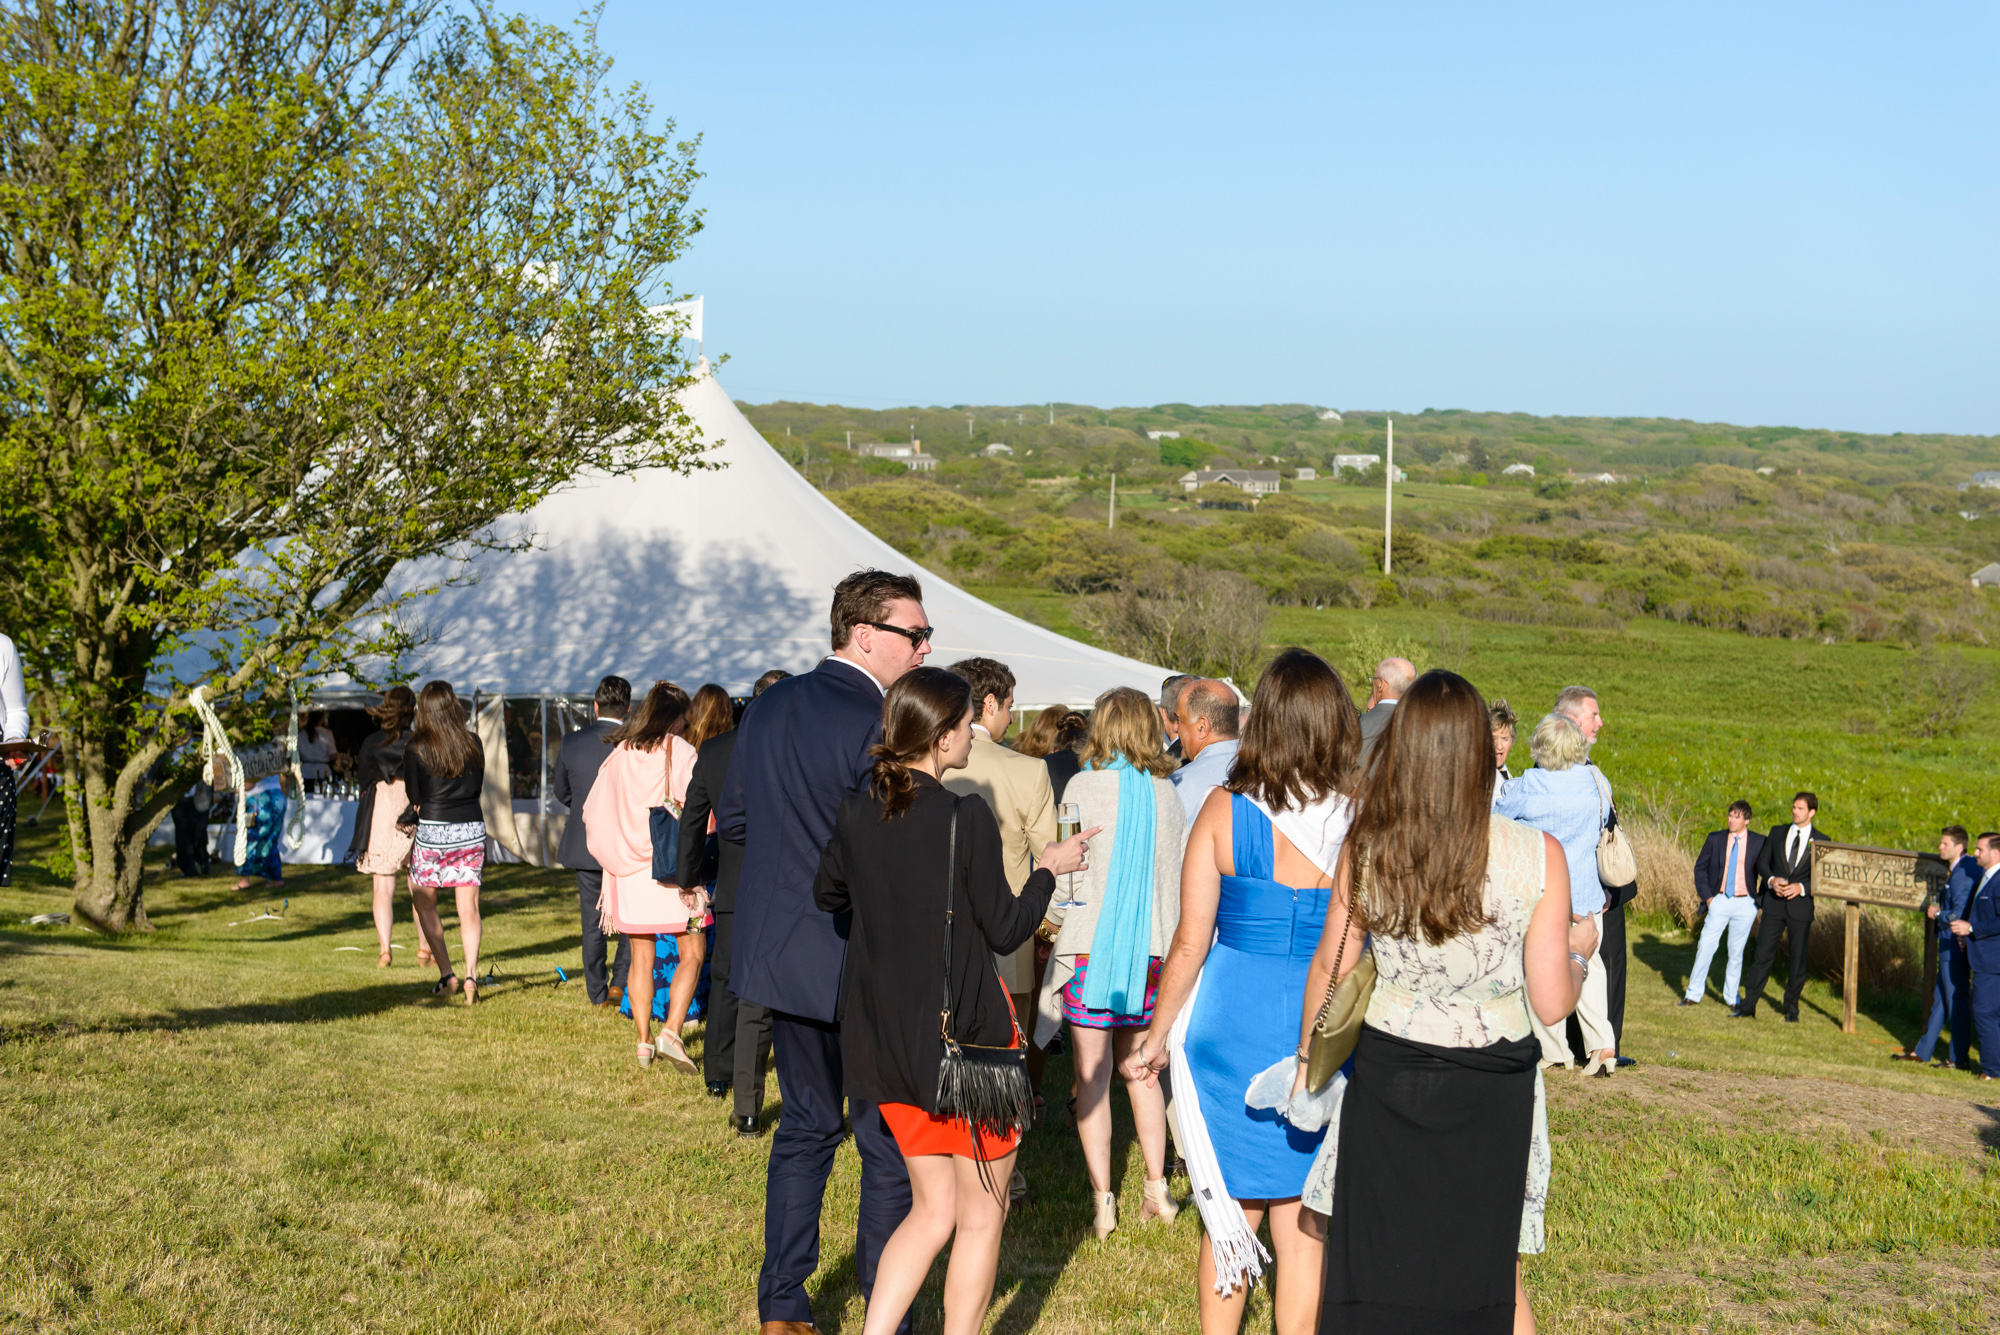 A wedding reception and tent at the Vanderhoop Homestead photo by David Welch Photography